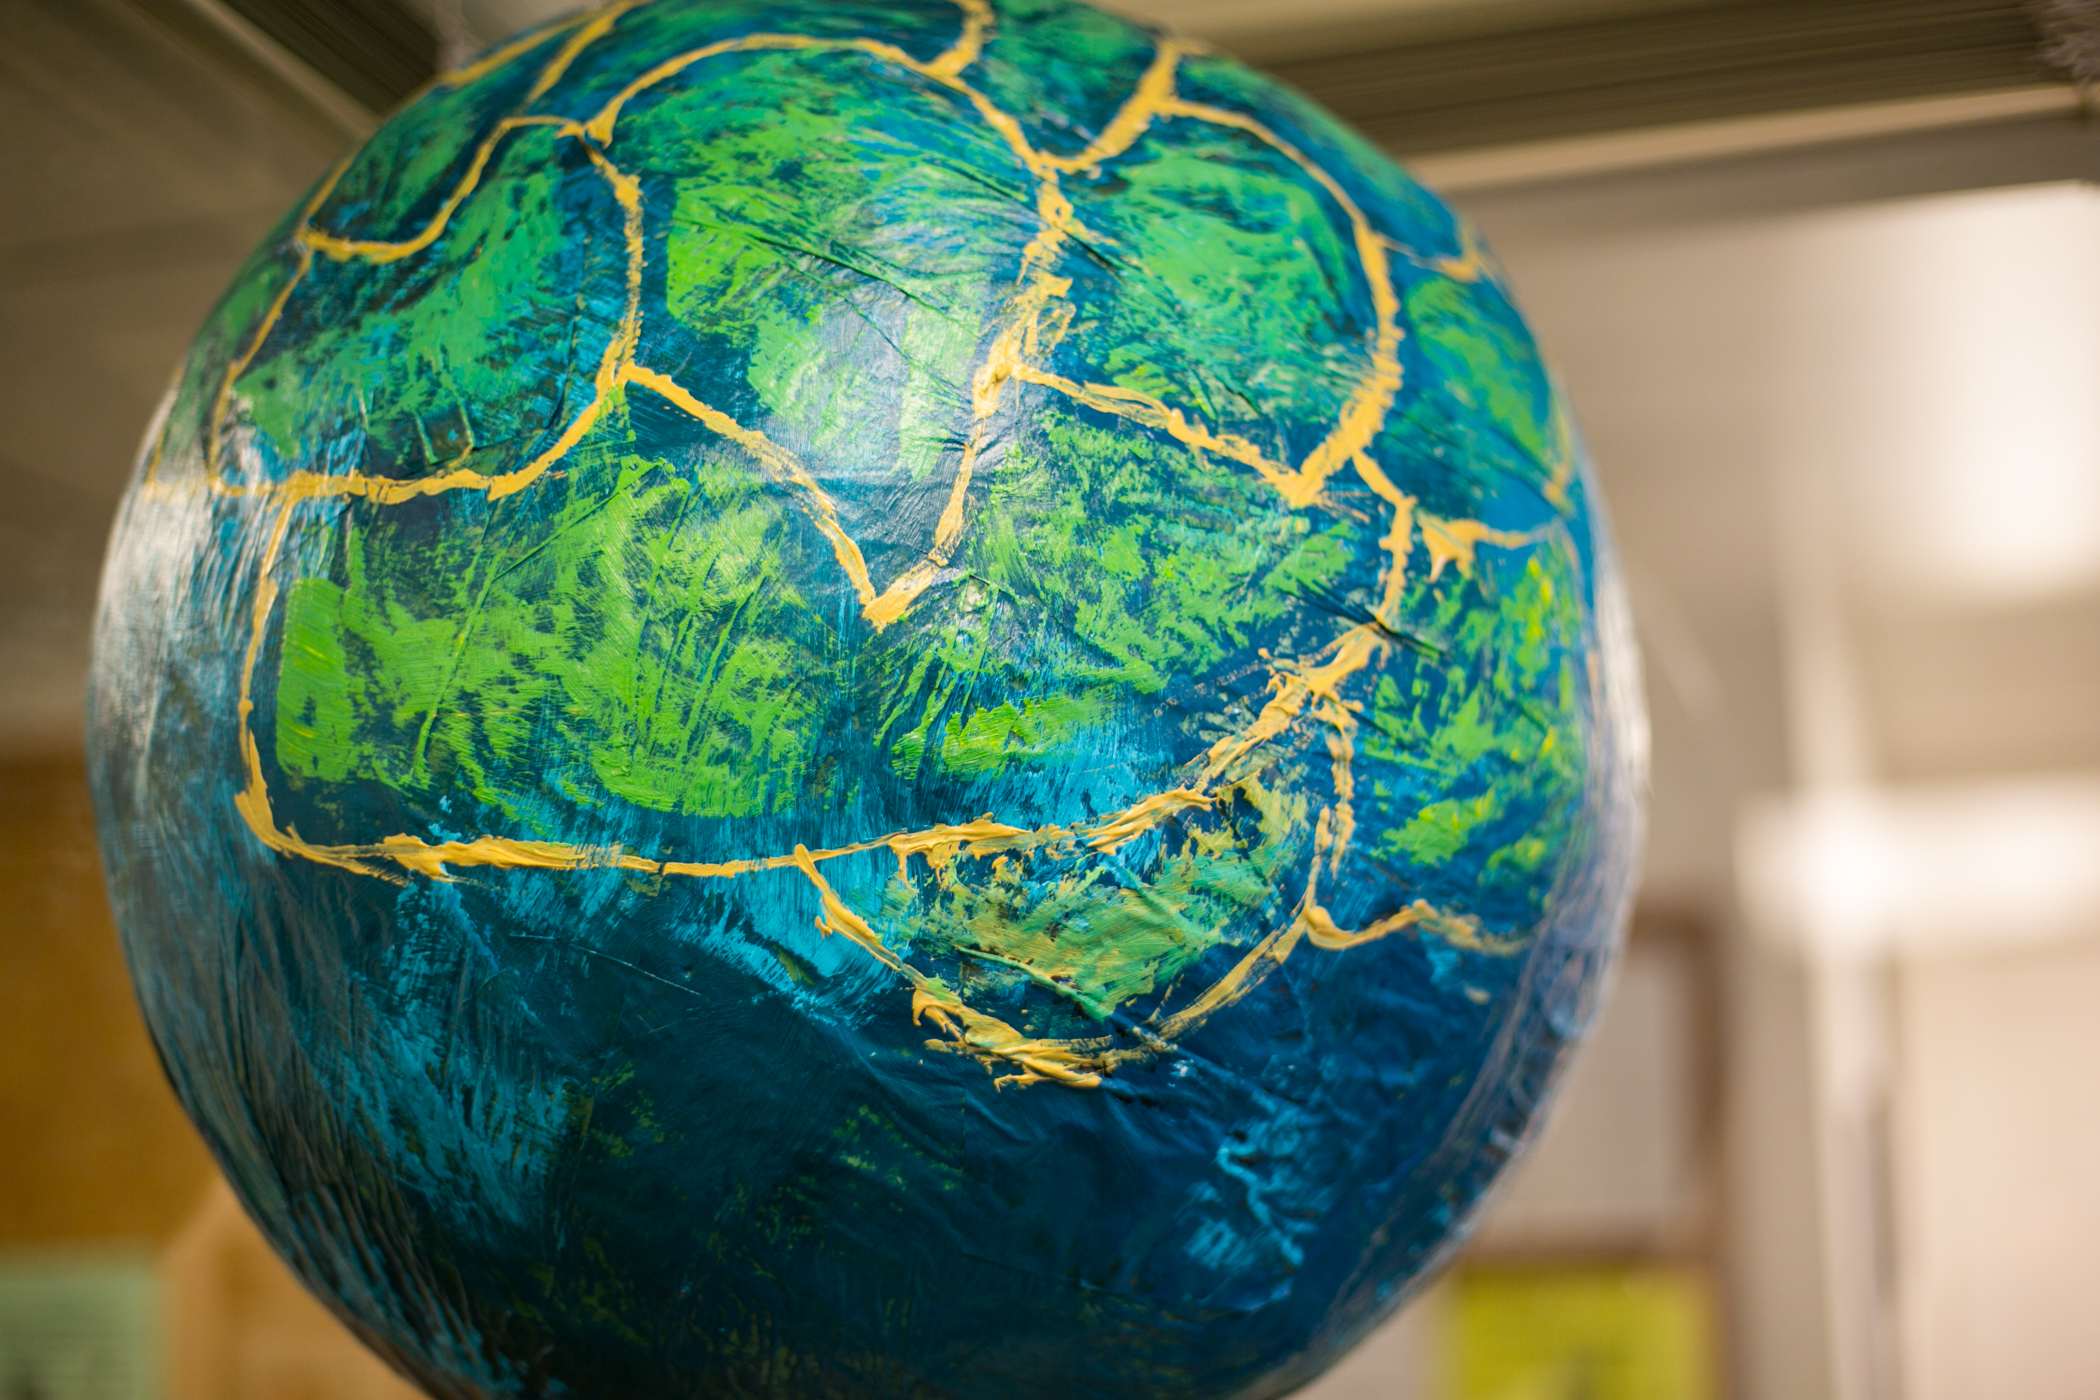 """Pangea"" was the name of the earth's original continent when it was one connected landmass.  For us, ""Pangea"" symbolizes the unity and oneness of our global community.  The pinata-globe depicted above was a gift by one of our board members."